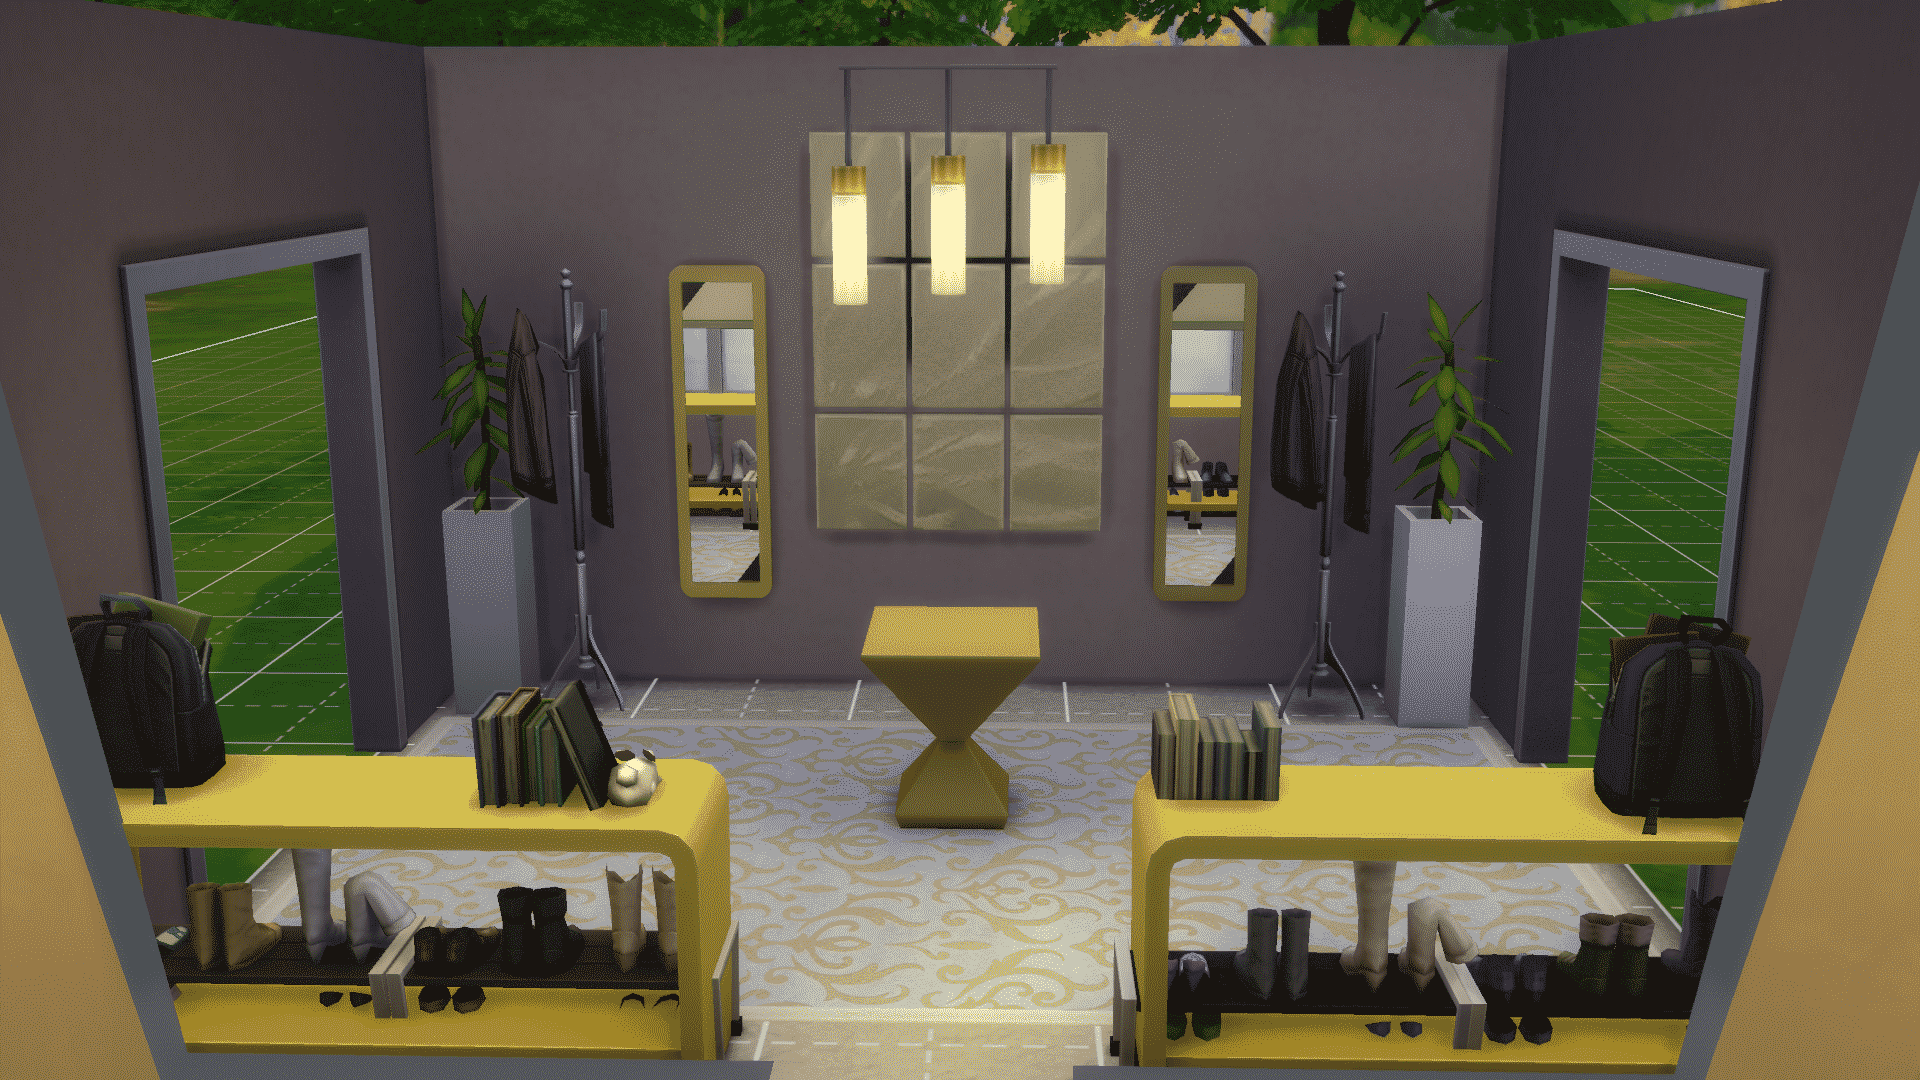 The Sims 4: Interior Design Guide - HDB 4Room BTO Minimalist Charm @ Anchorvale